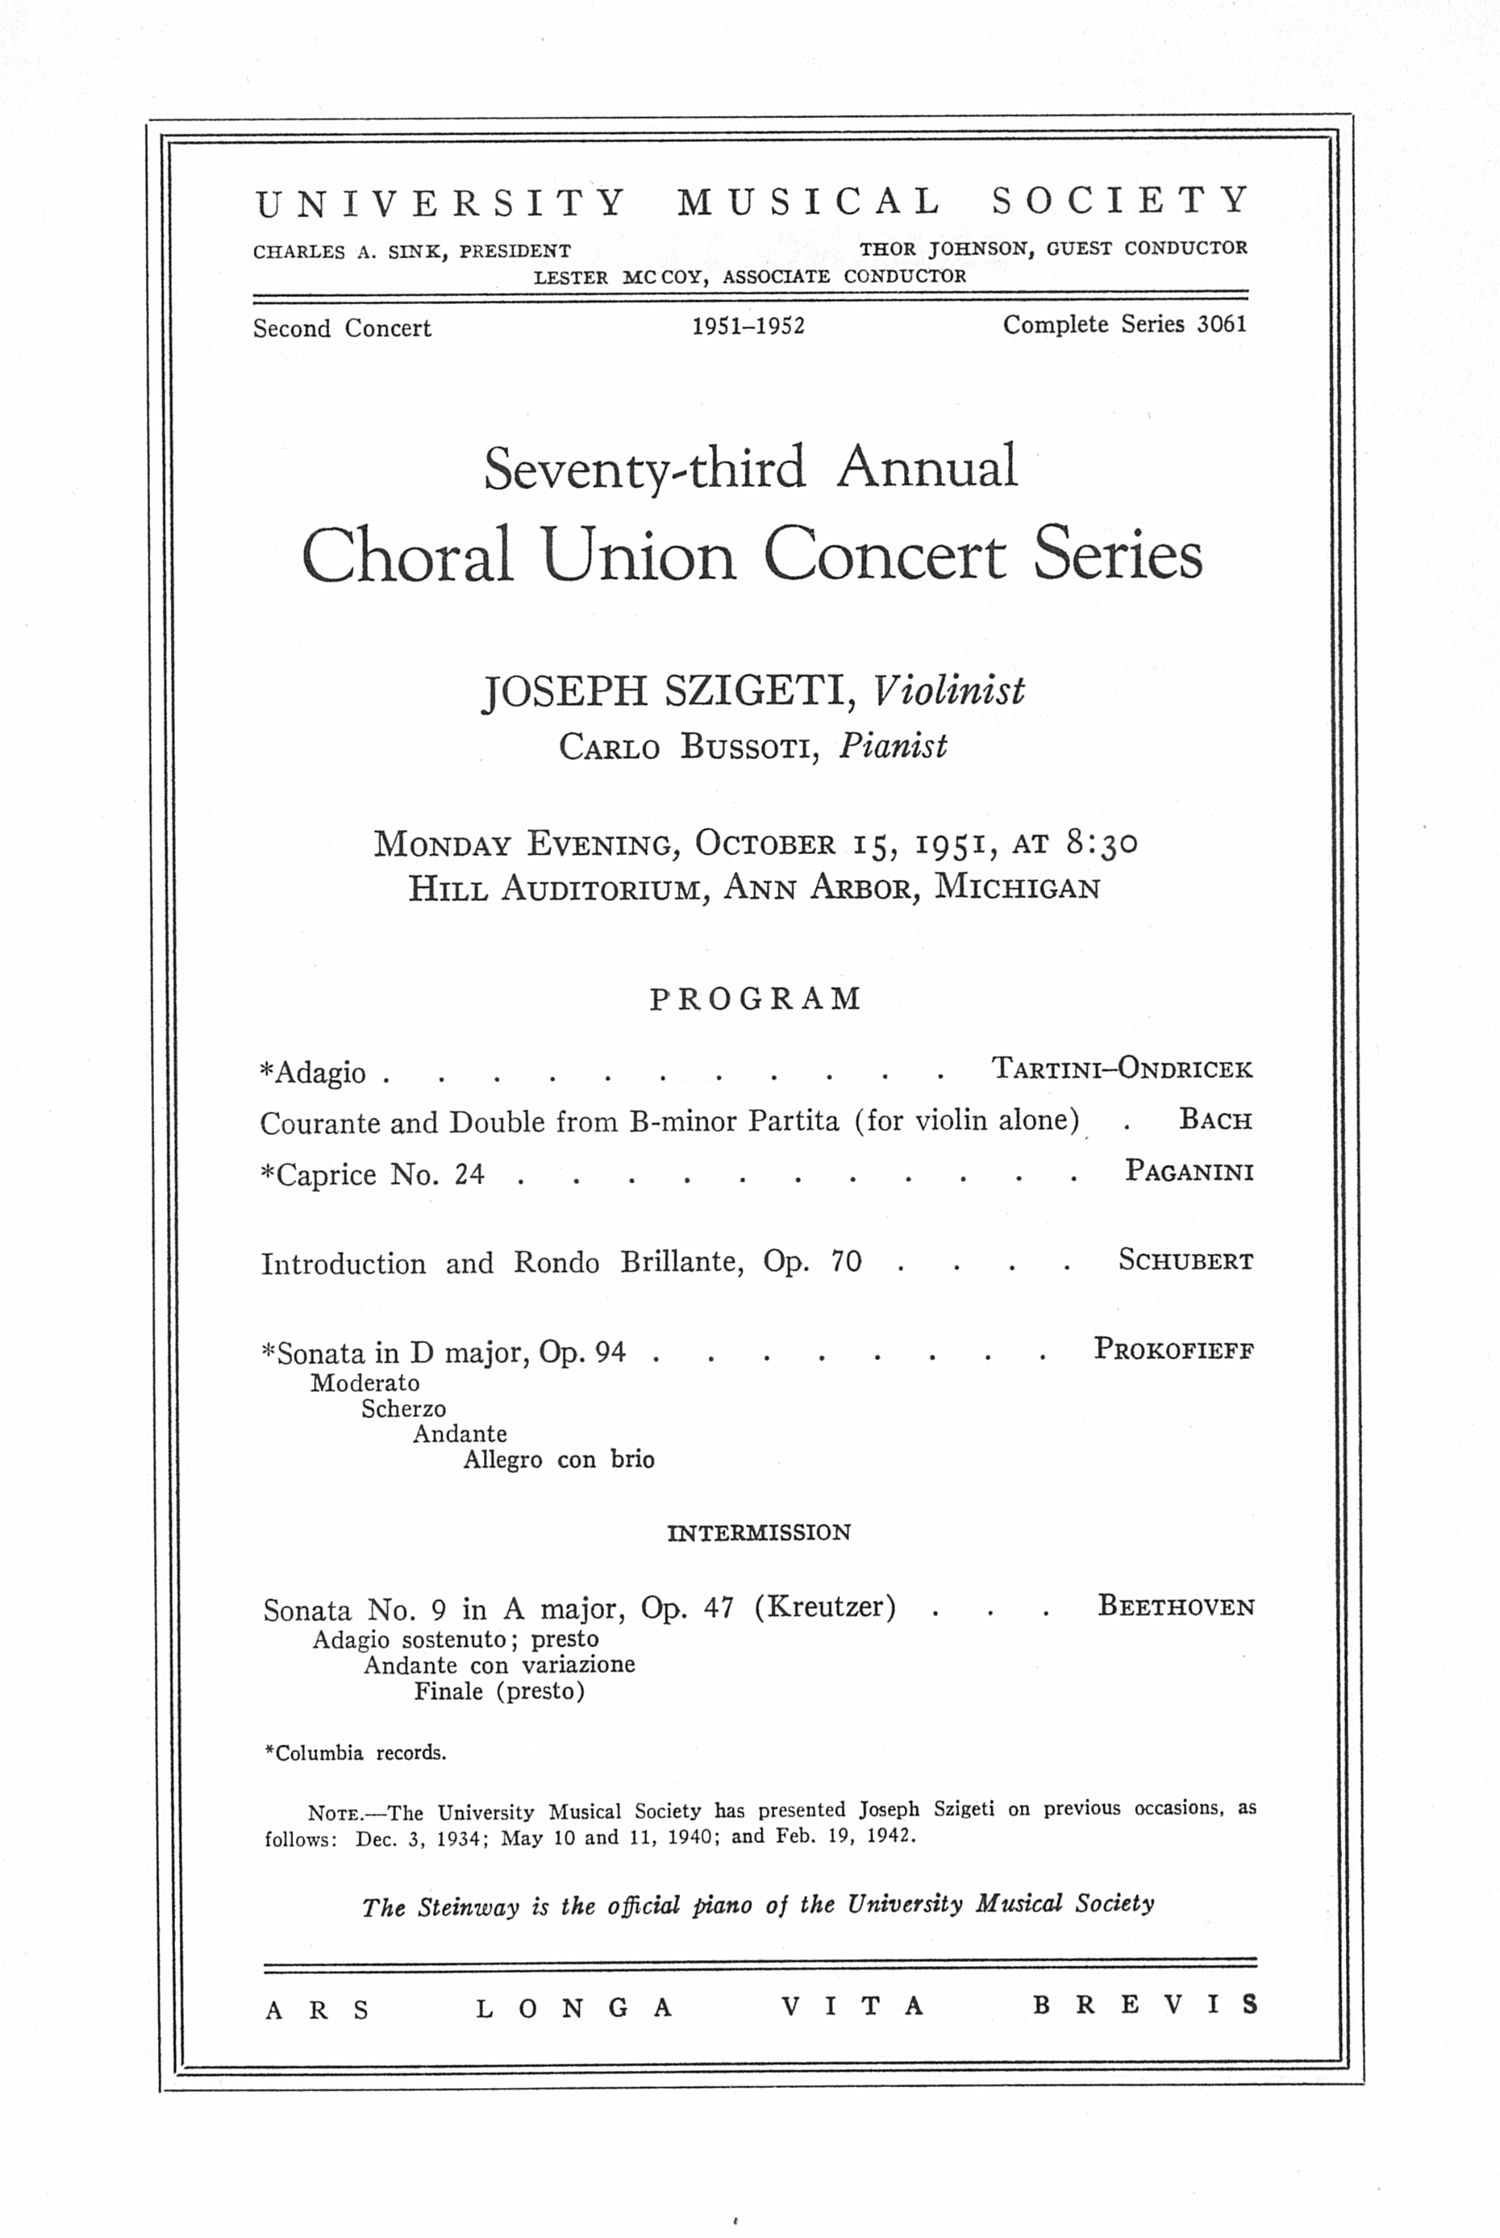 UMS Concert Program, October 15, 1951: Seventy-third Annual Choral Union Concert Series -- Joseph Szigeti image